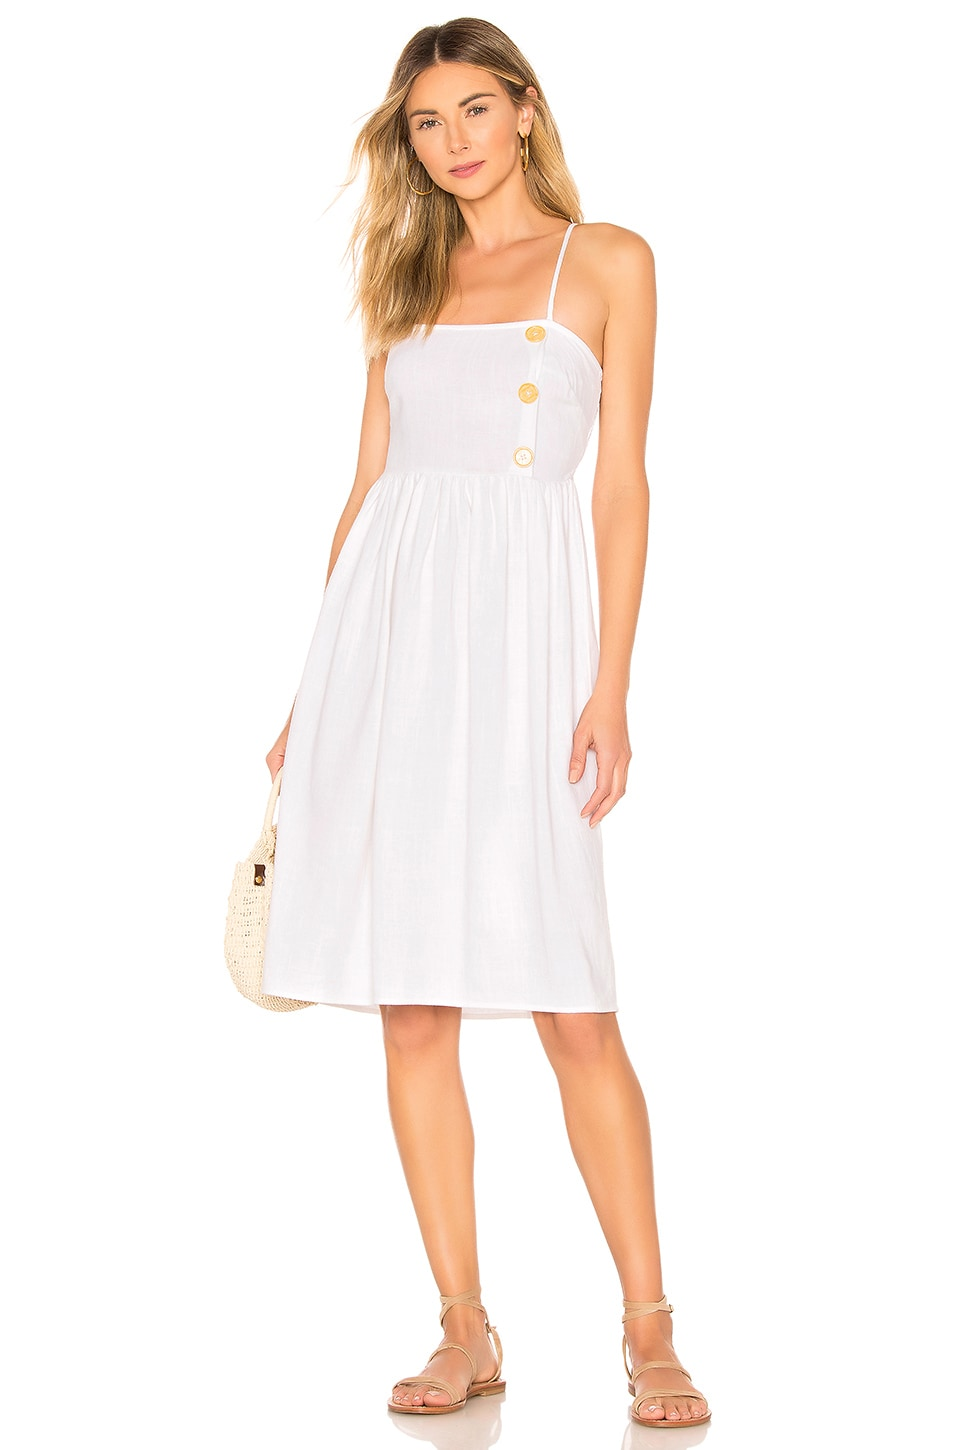 House of Harlow 1960 X REVOLVE Lani Dress in Ivory